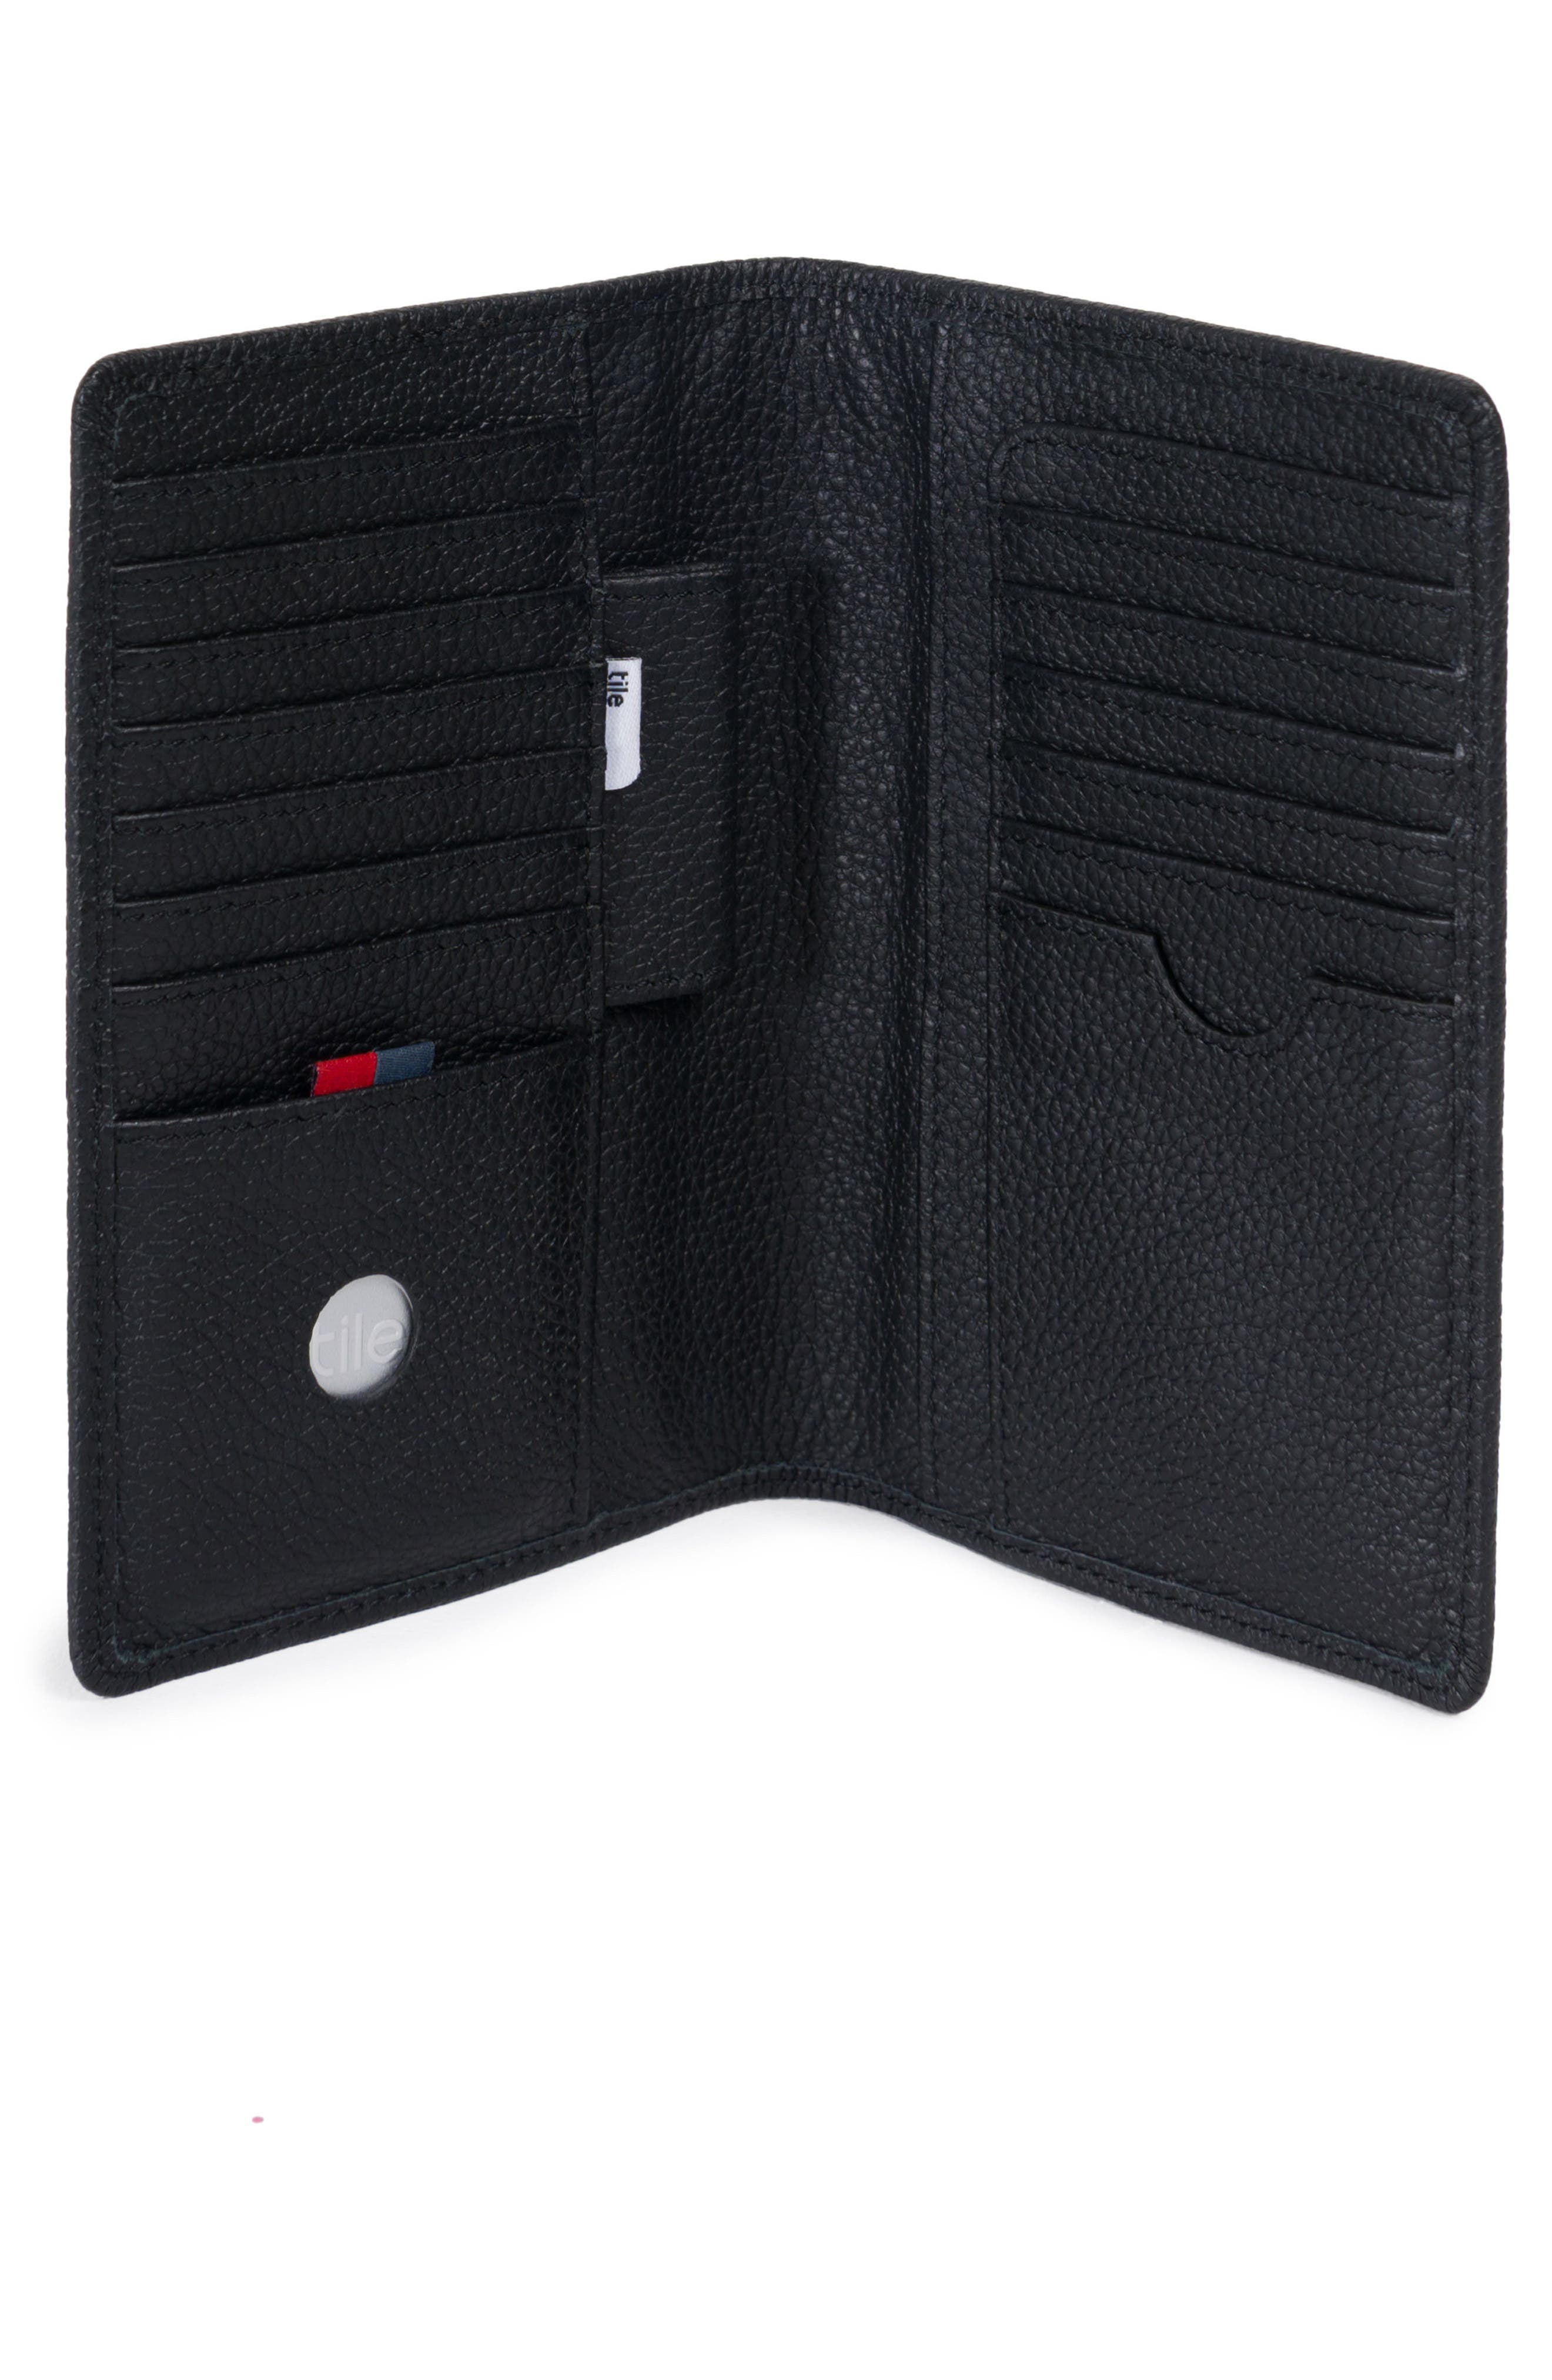 Tile Search Slim Vertical Leather Wallet,                             Alternate thumbnail 2, color,                             Black Pebbled Leather